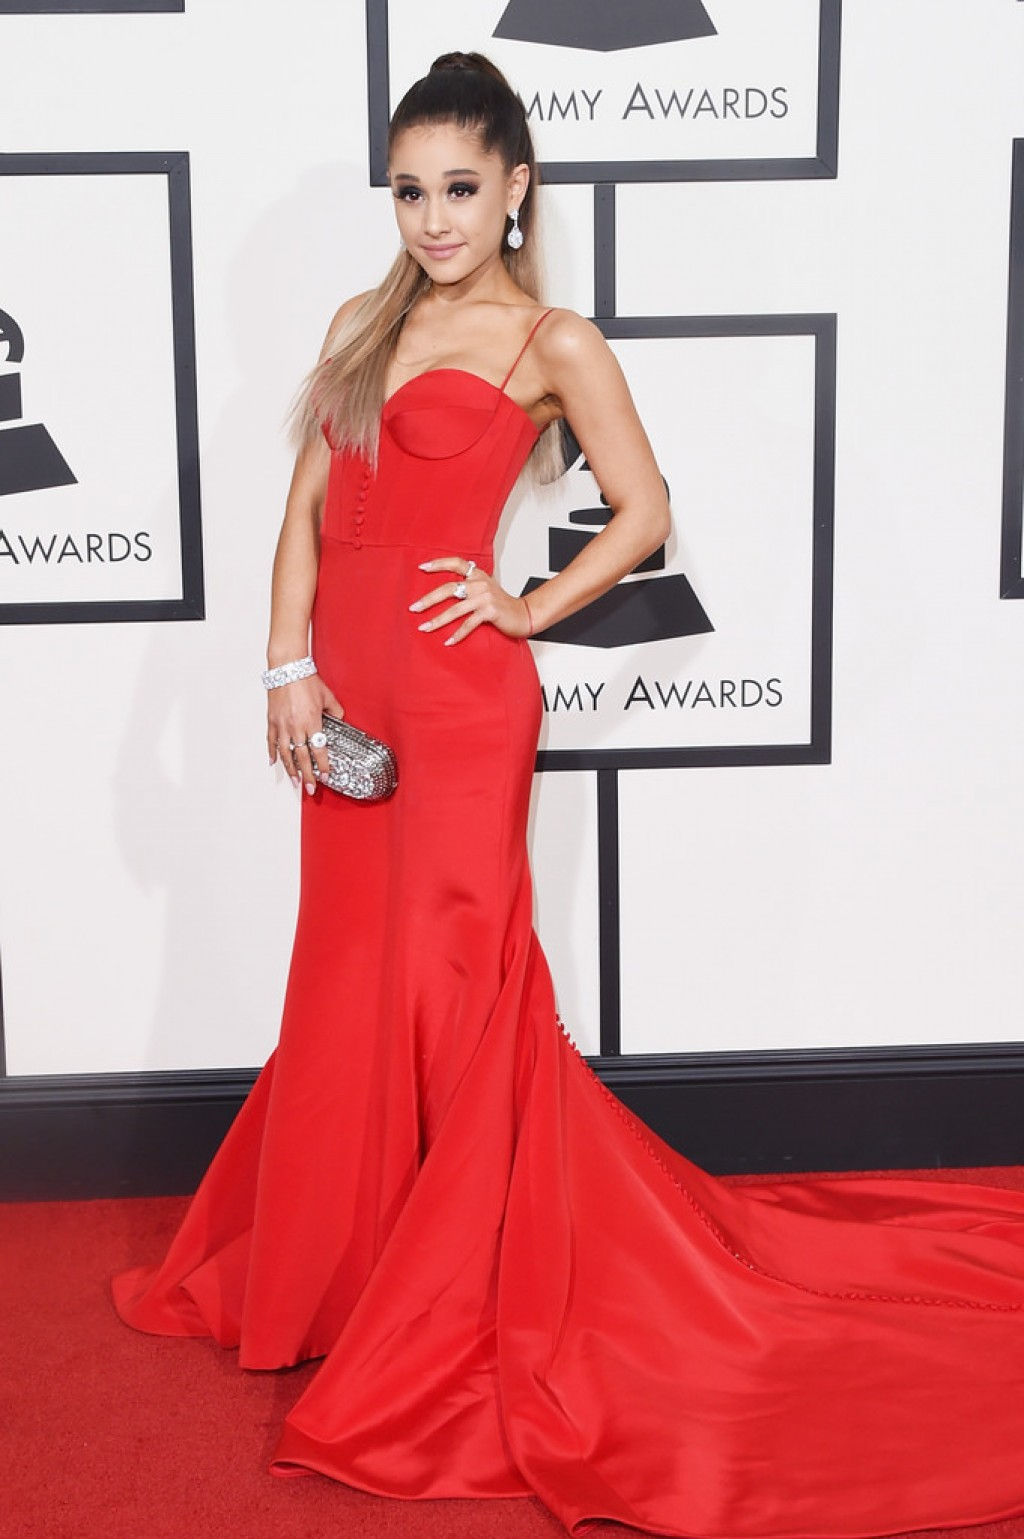 Ariana-Grande-Wearing-Romona-Keveza-2016-Grammys-dress-1024x1539